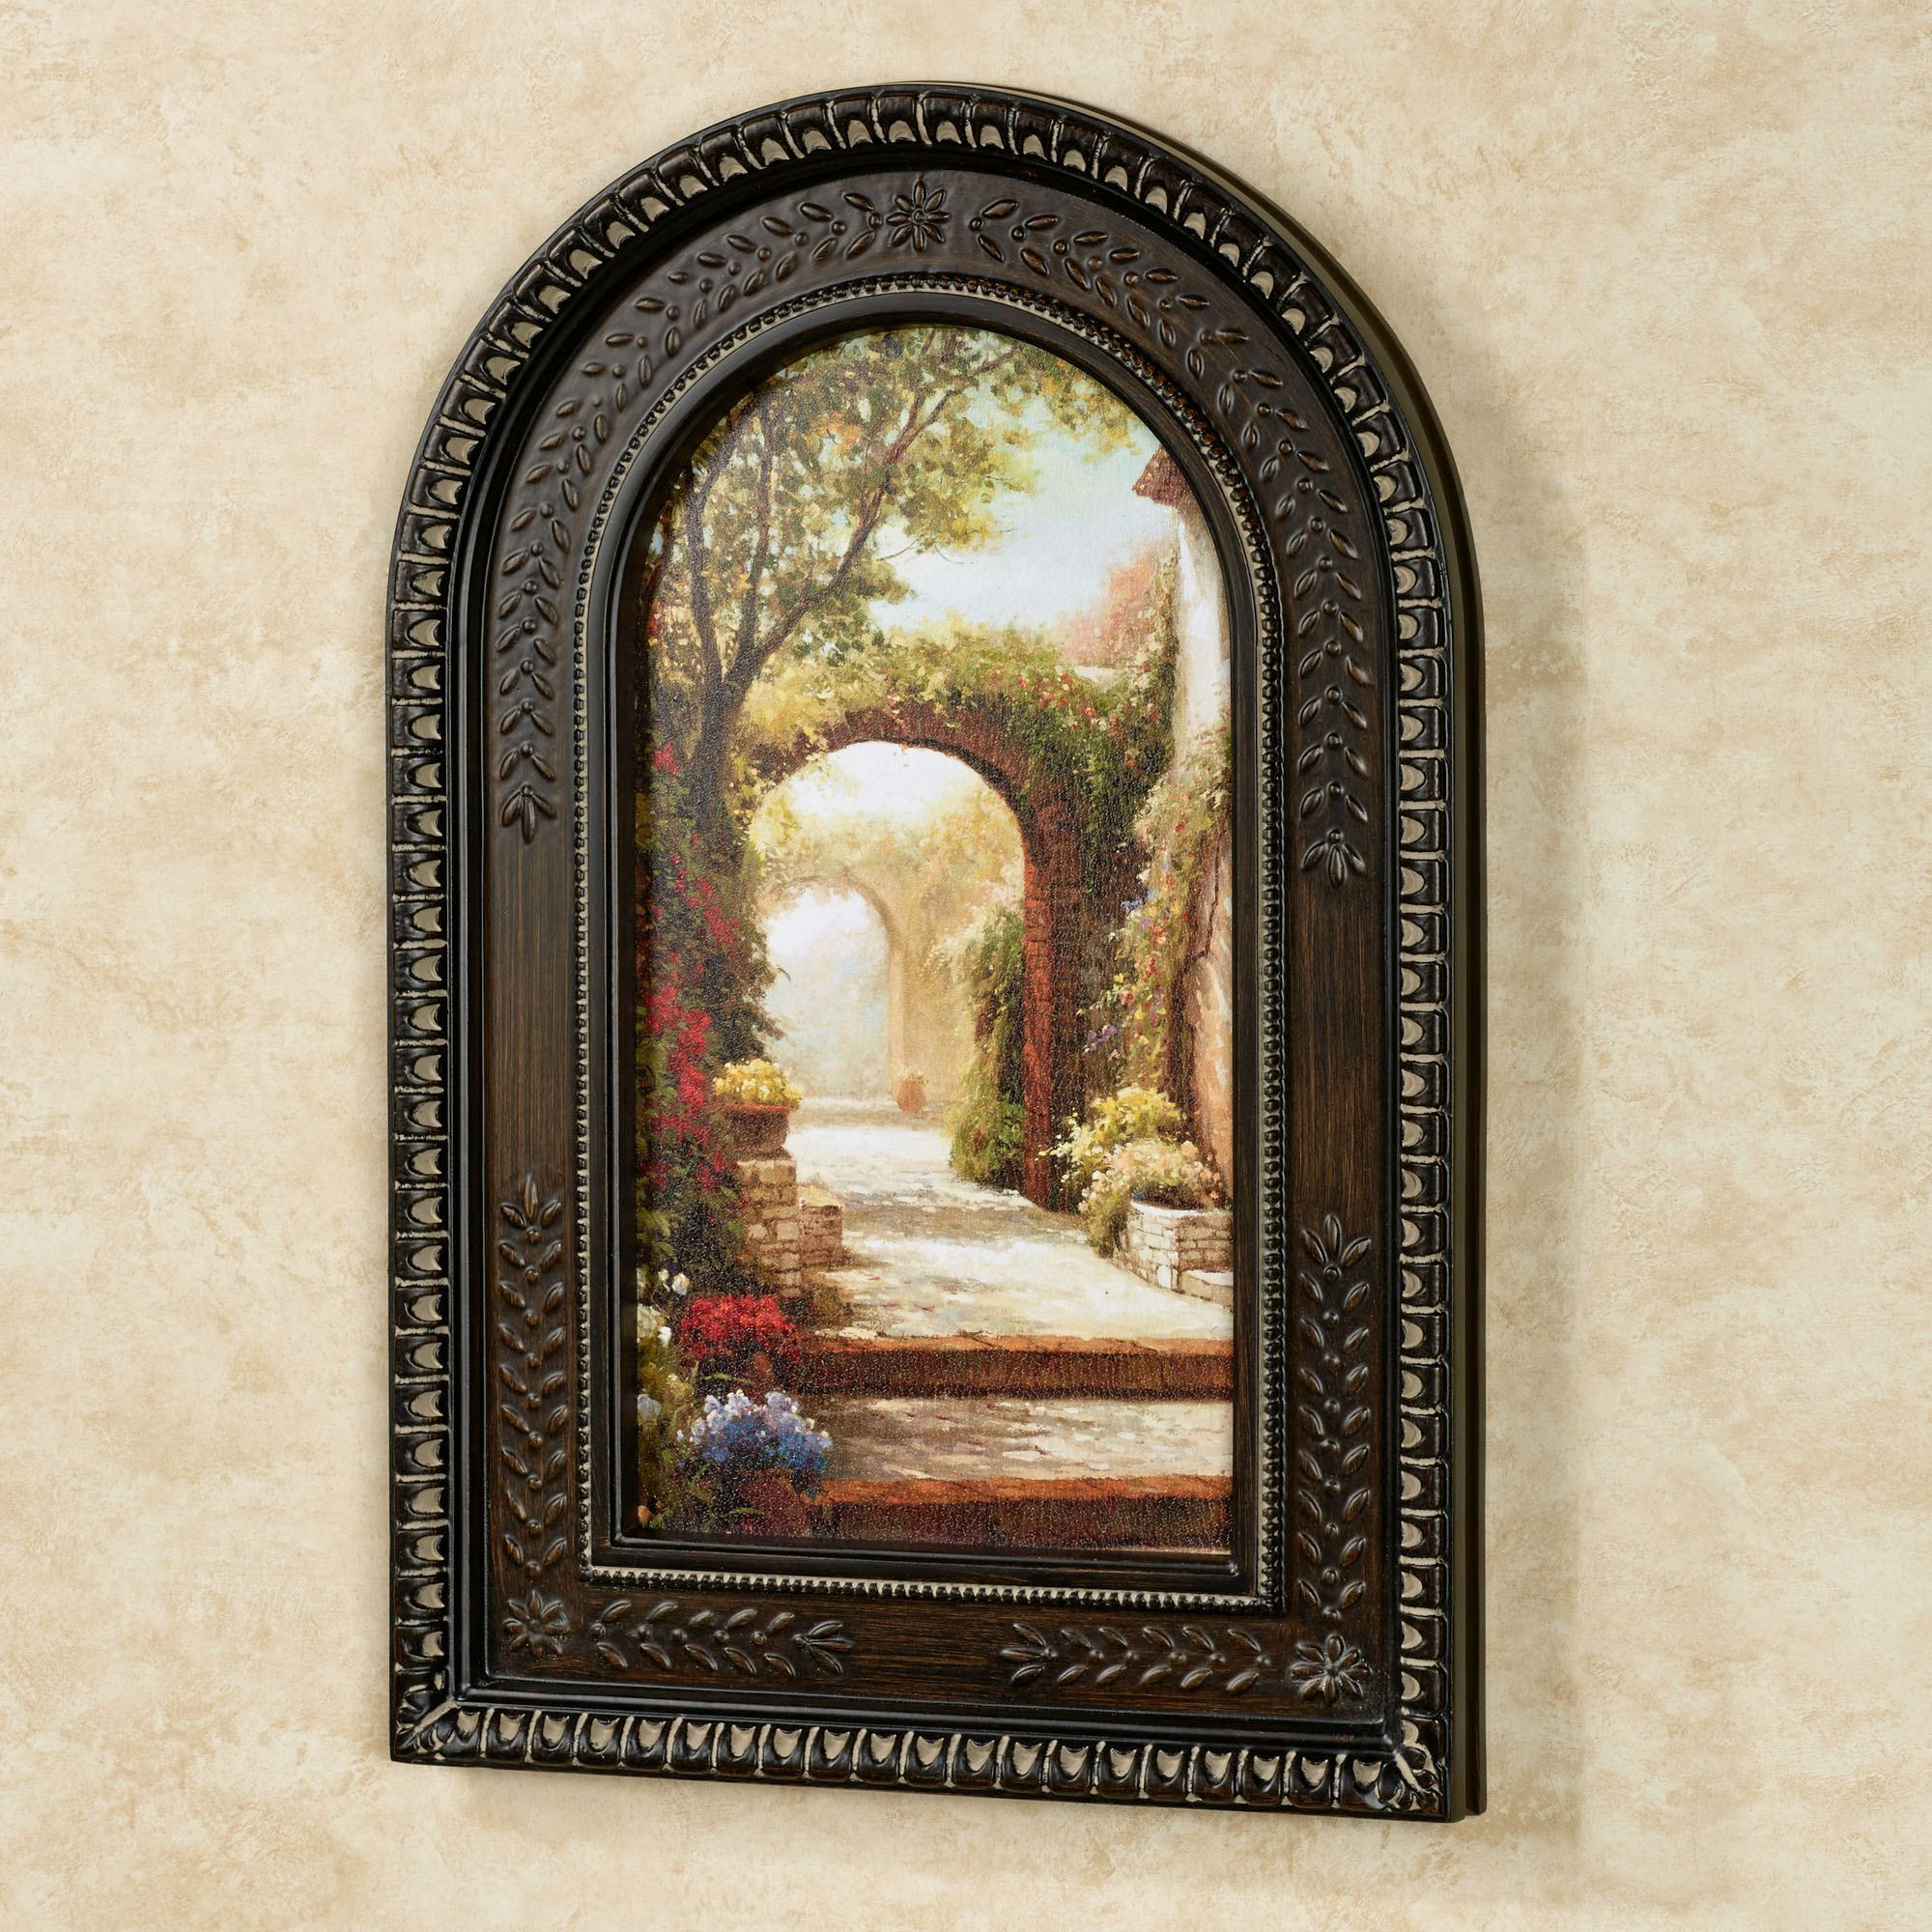 Pin By Aneika On Framed Art In 2021 Arched Wall Decor Framed Wall Art Framed Art